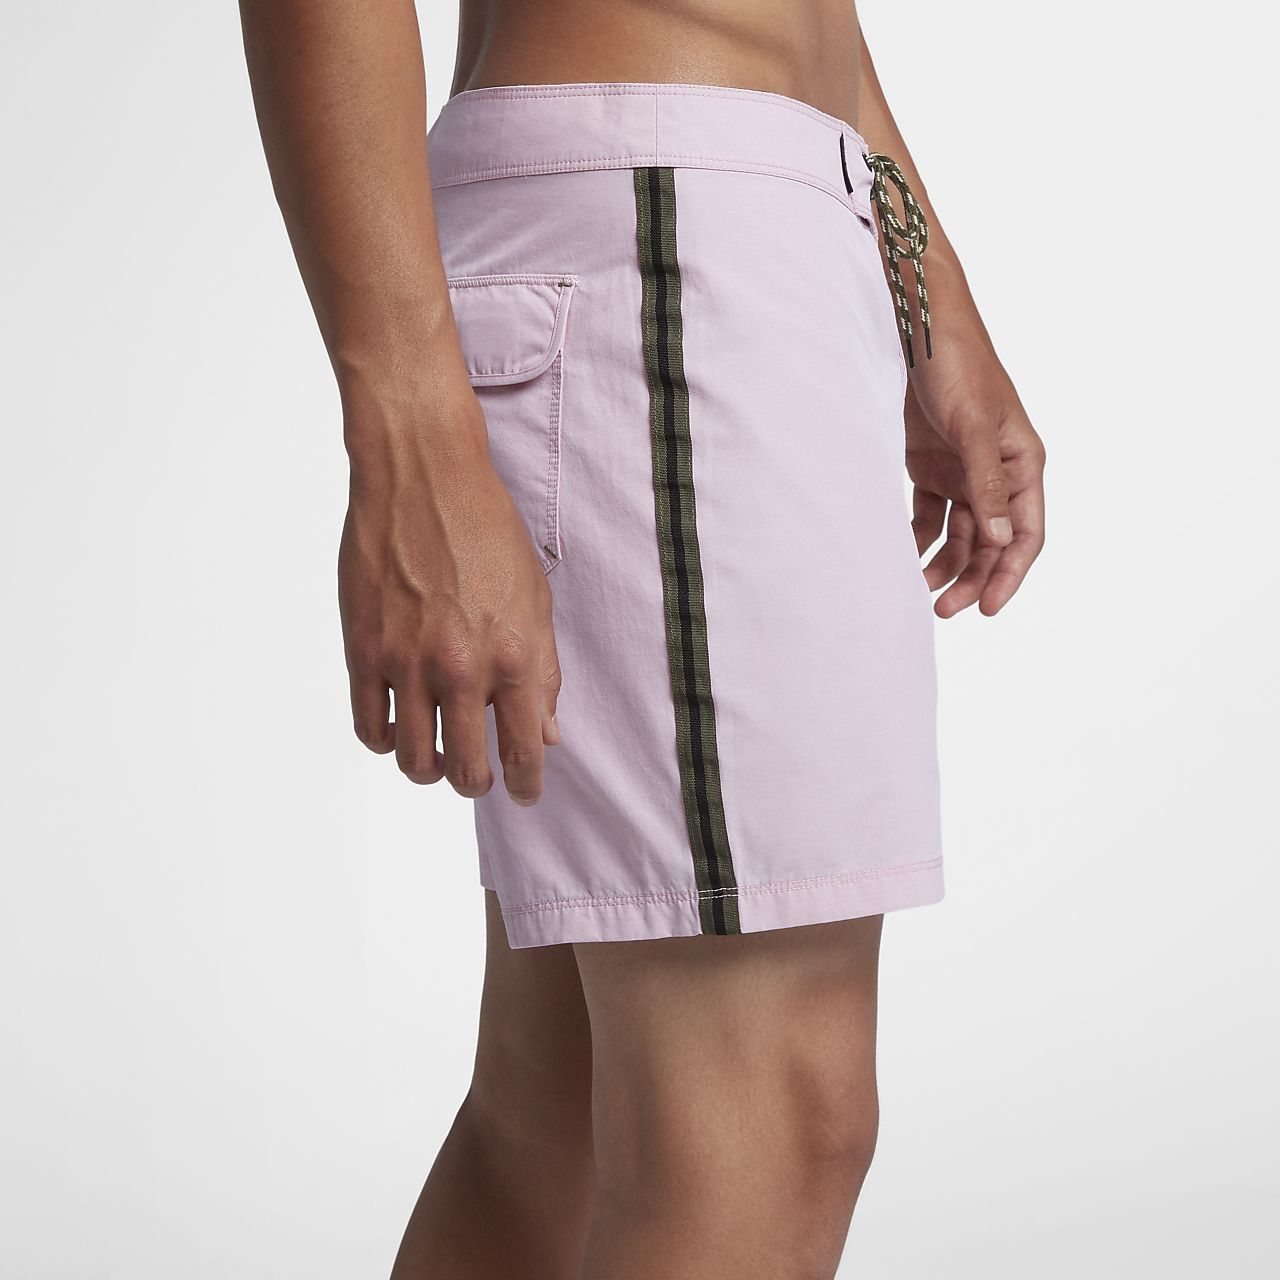 Hurley Navigation Board Shorts Clearance Professional Professional Sale Online YnOfMg